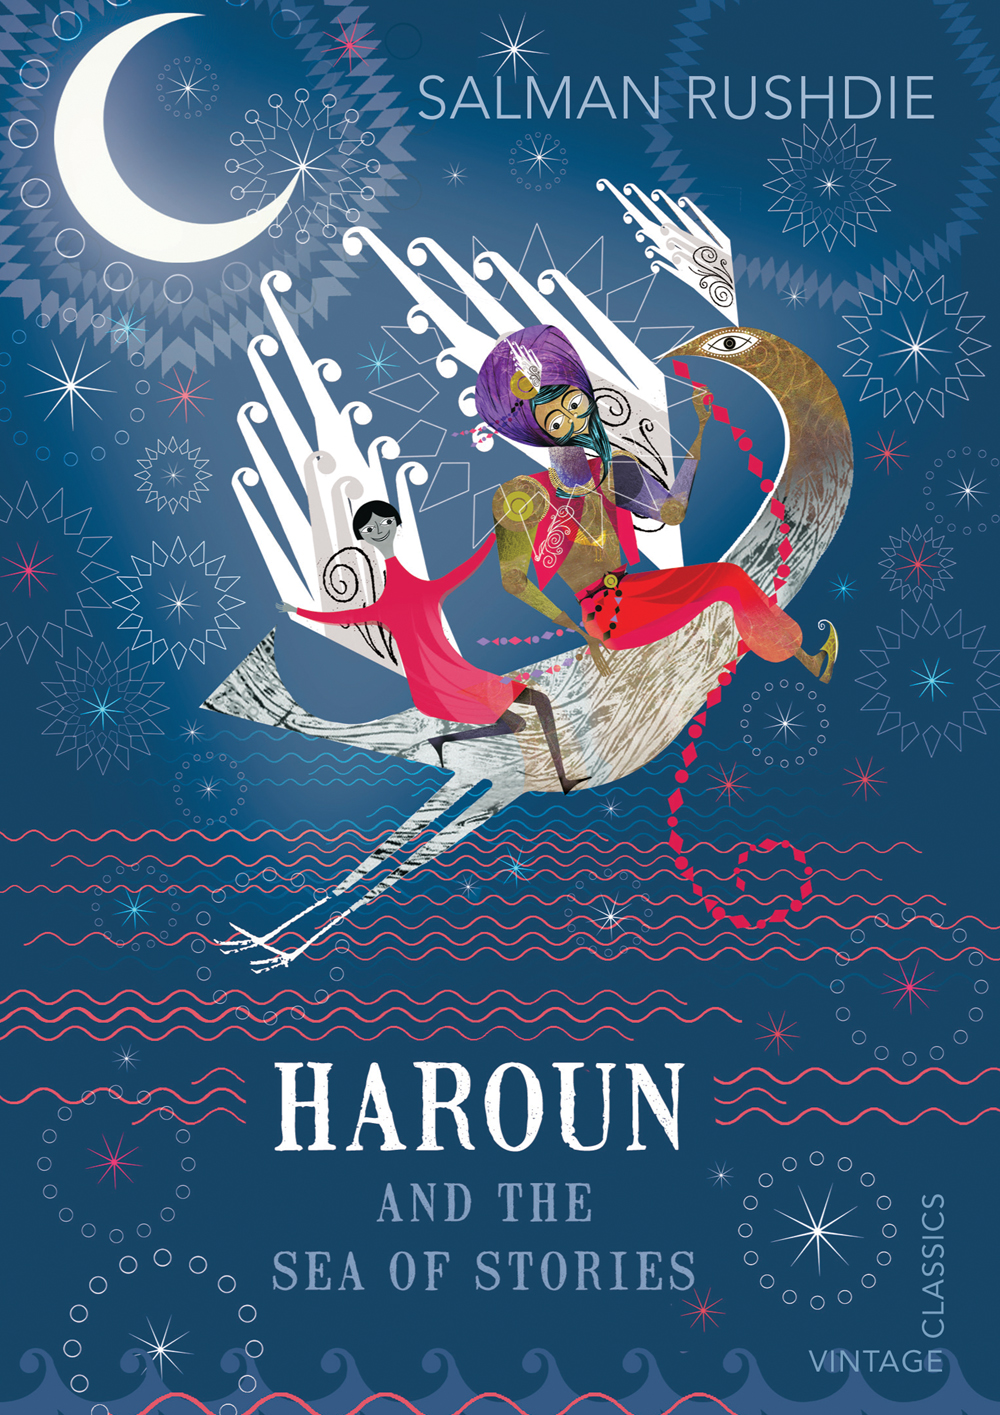 Rushdie - Haroun & The Sea of Stories